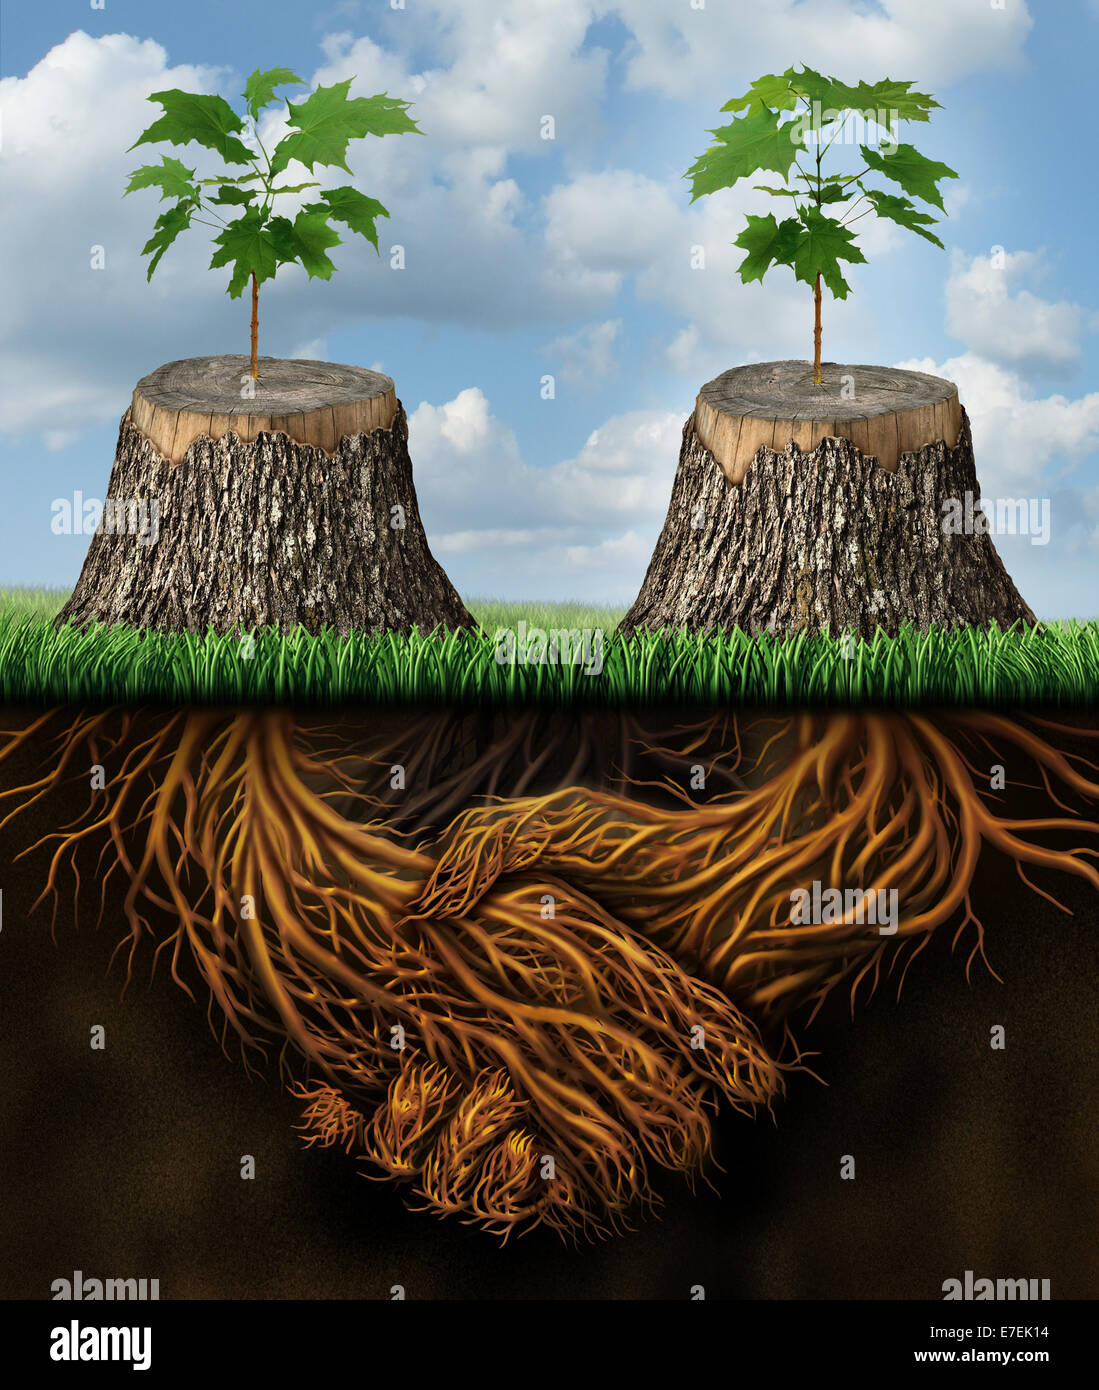 Helping one another as a mutual benefit business support group concept as two chopped trees with new growth of hope - Stock Image